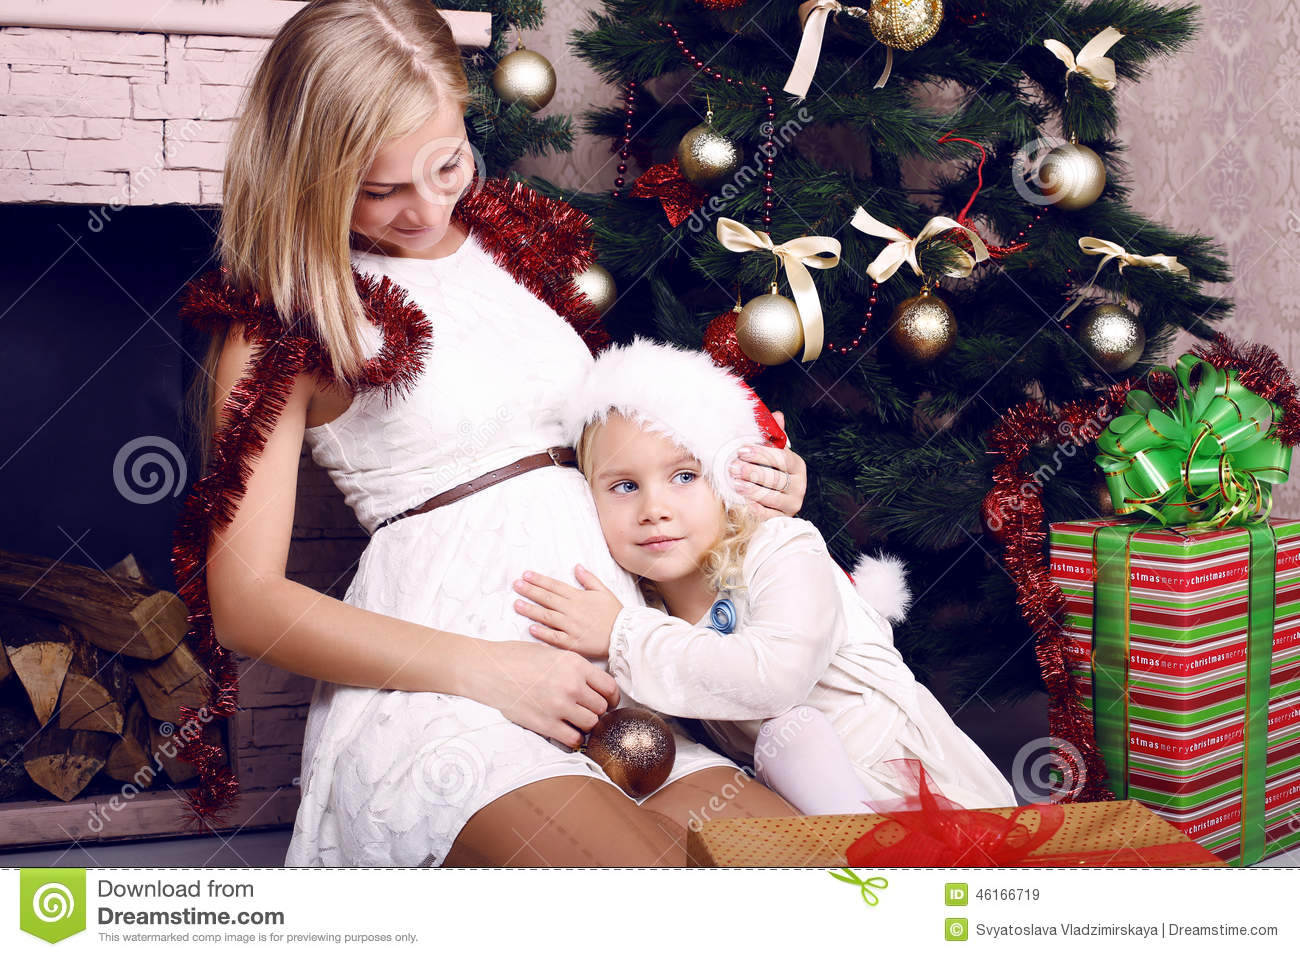 Adorable photo of happy family. pregnant mother with her little cute  daughter posing beside a decorated Christmas tree and presents b779e5a75